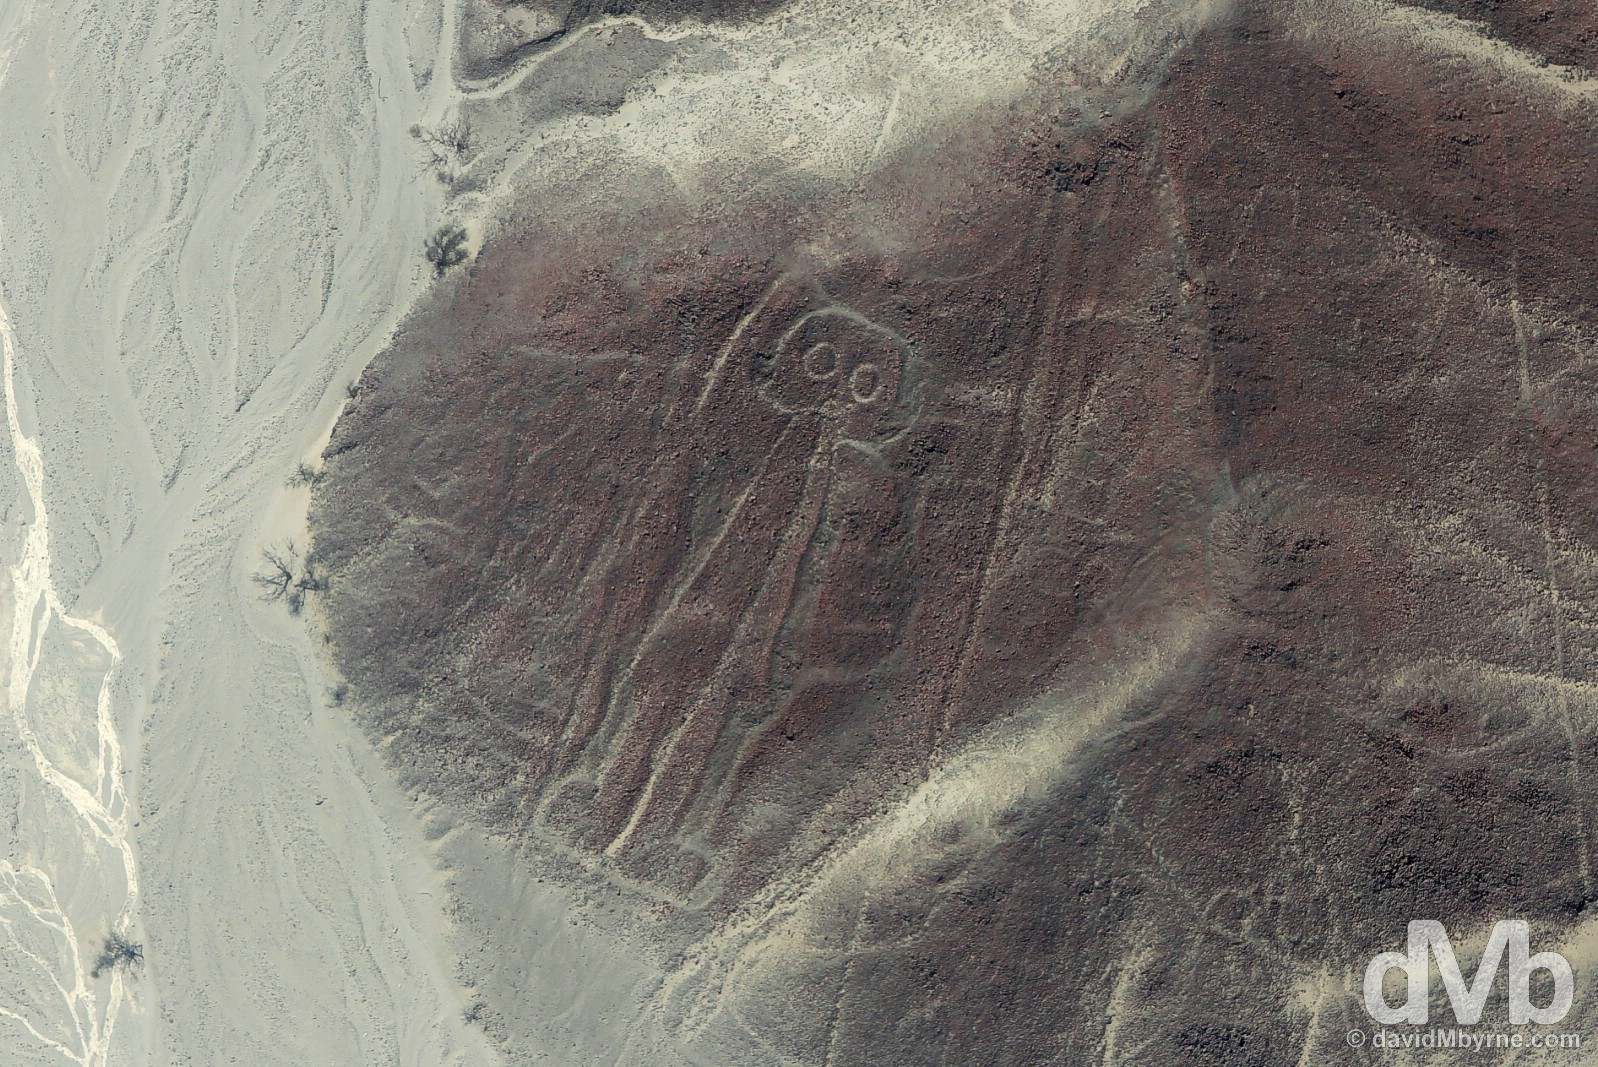 The Astronaut of the Nasca Lines, Nasca Plain, southern Peru. August 11, 2015.